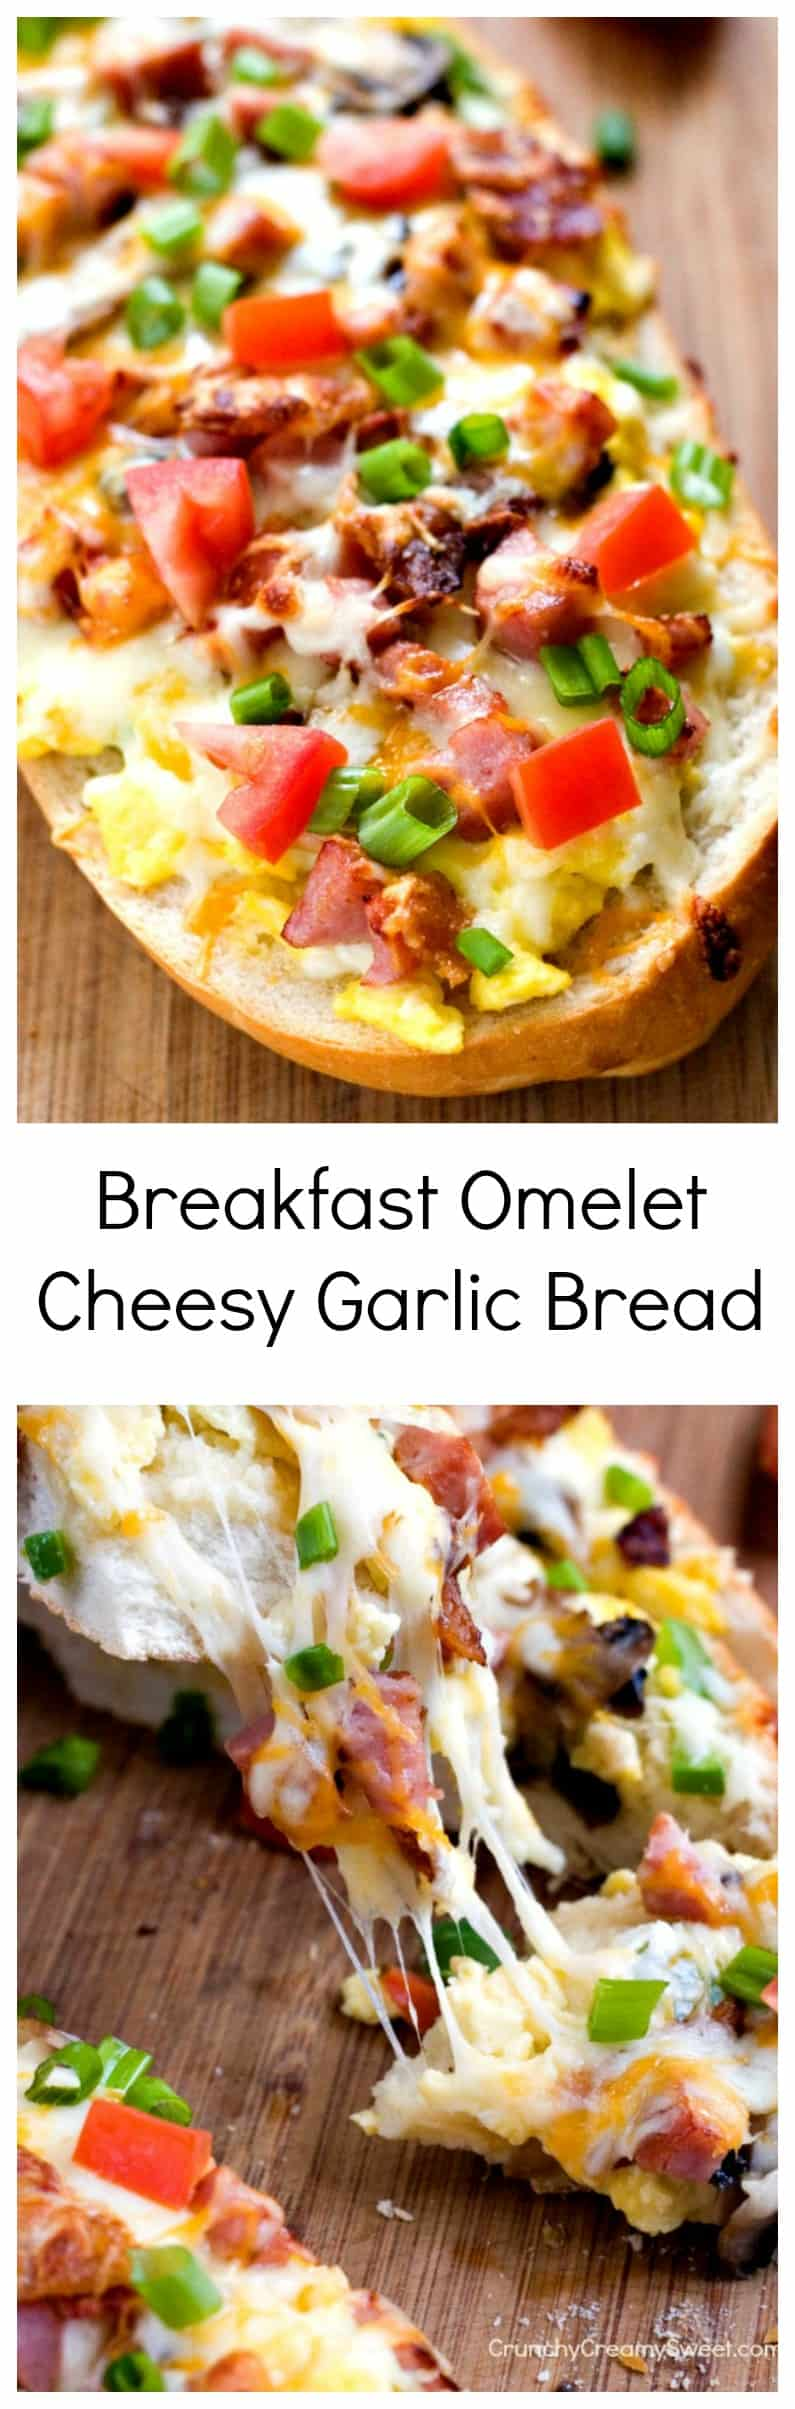 Breakfast Omelet Cheesy Garlic Bread easy bread topped with eggs bacon cheese mushroom and peppers Breakfast Omelet Cheesy Garlic Bread